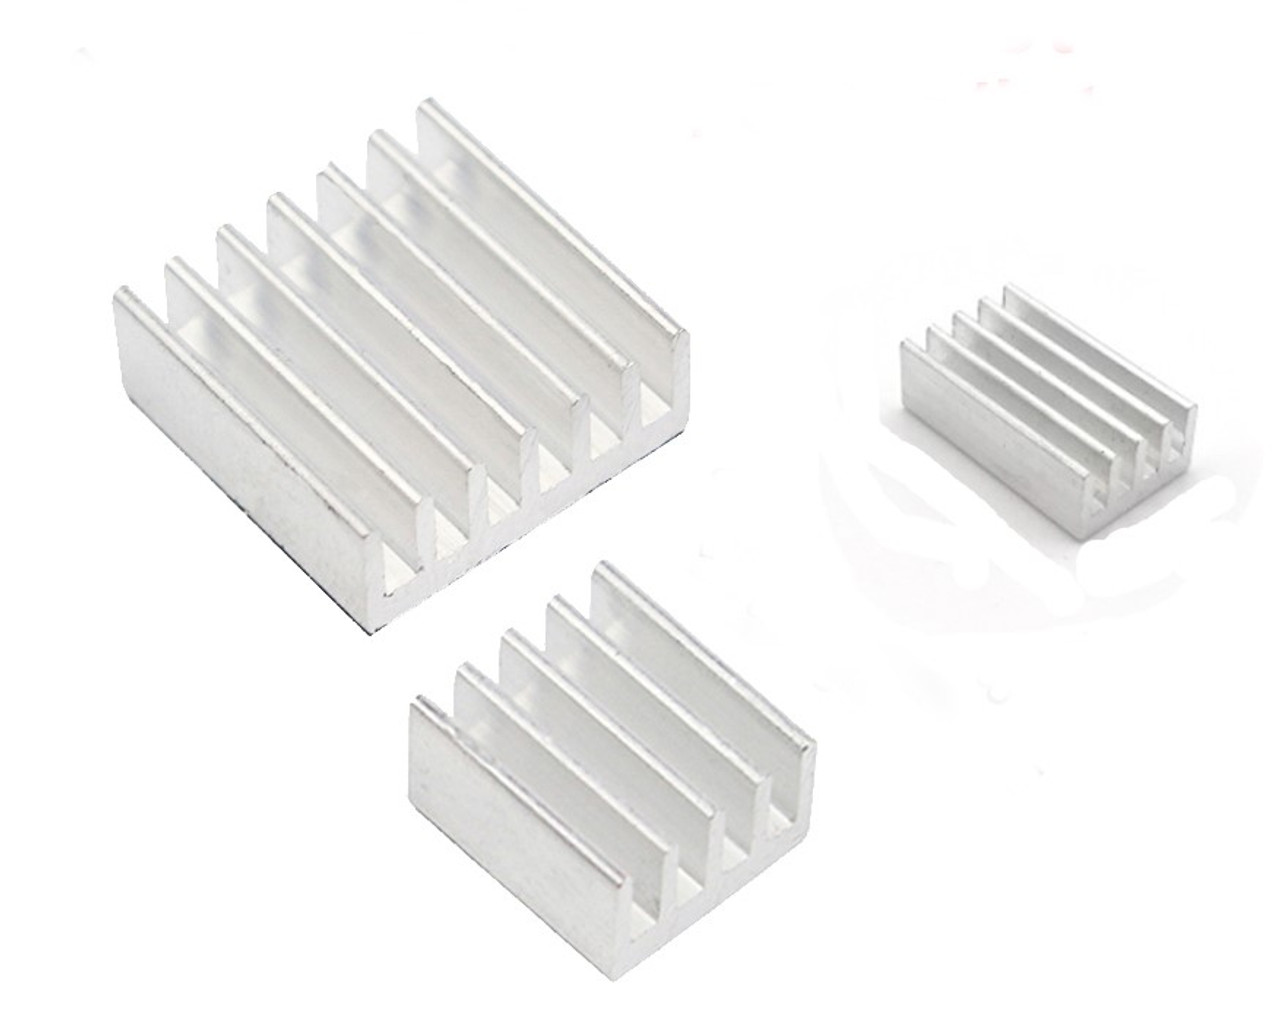 Aluminum Heat Sink Kit for Raspberry Pi